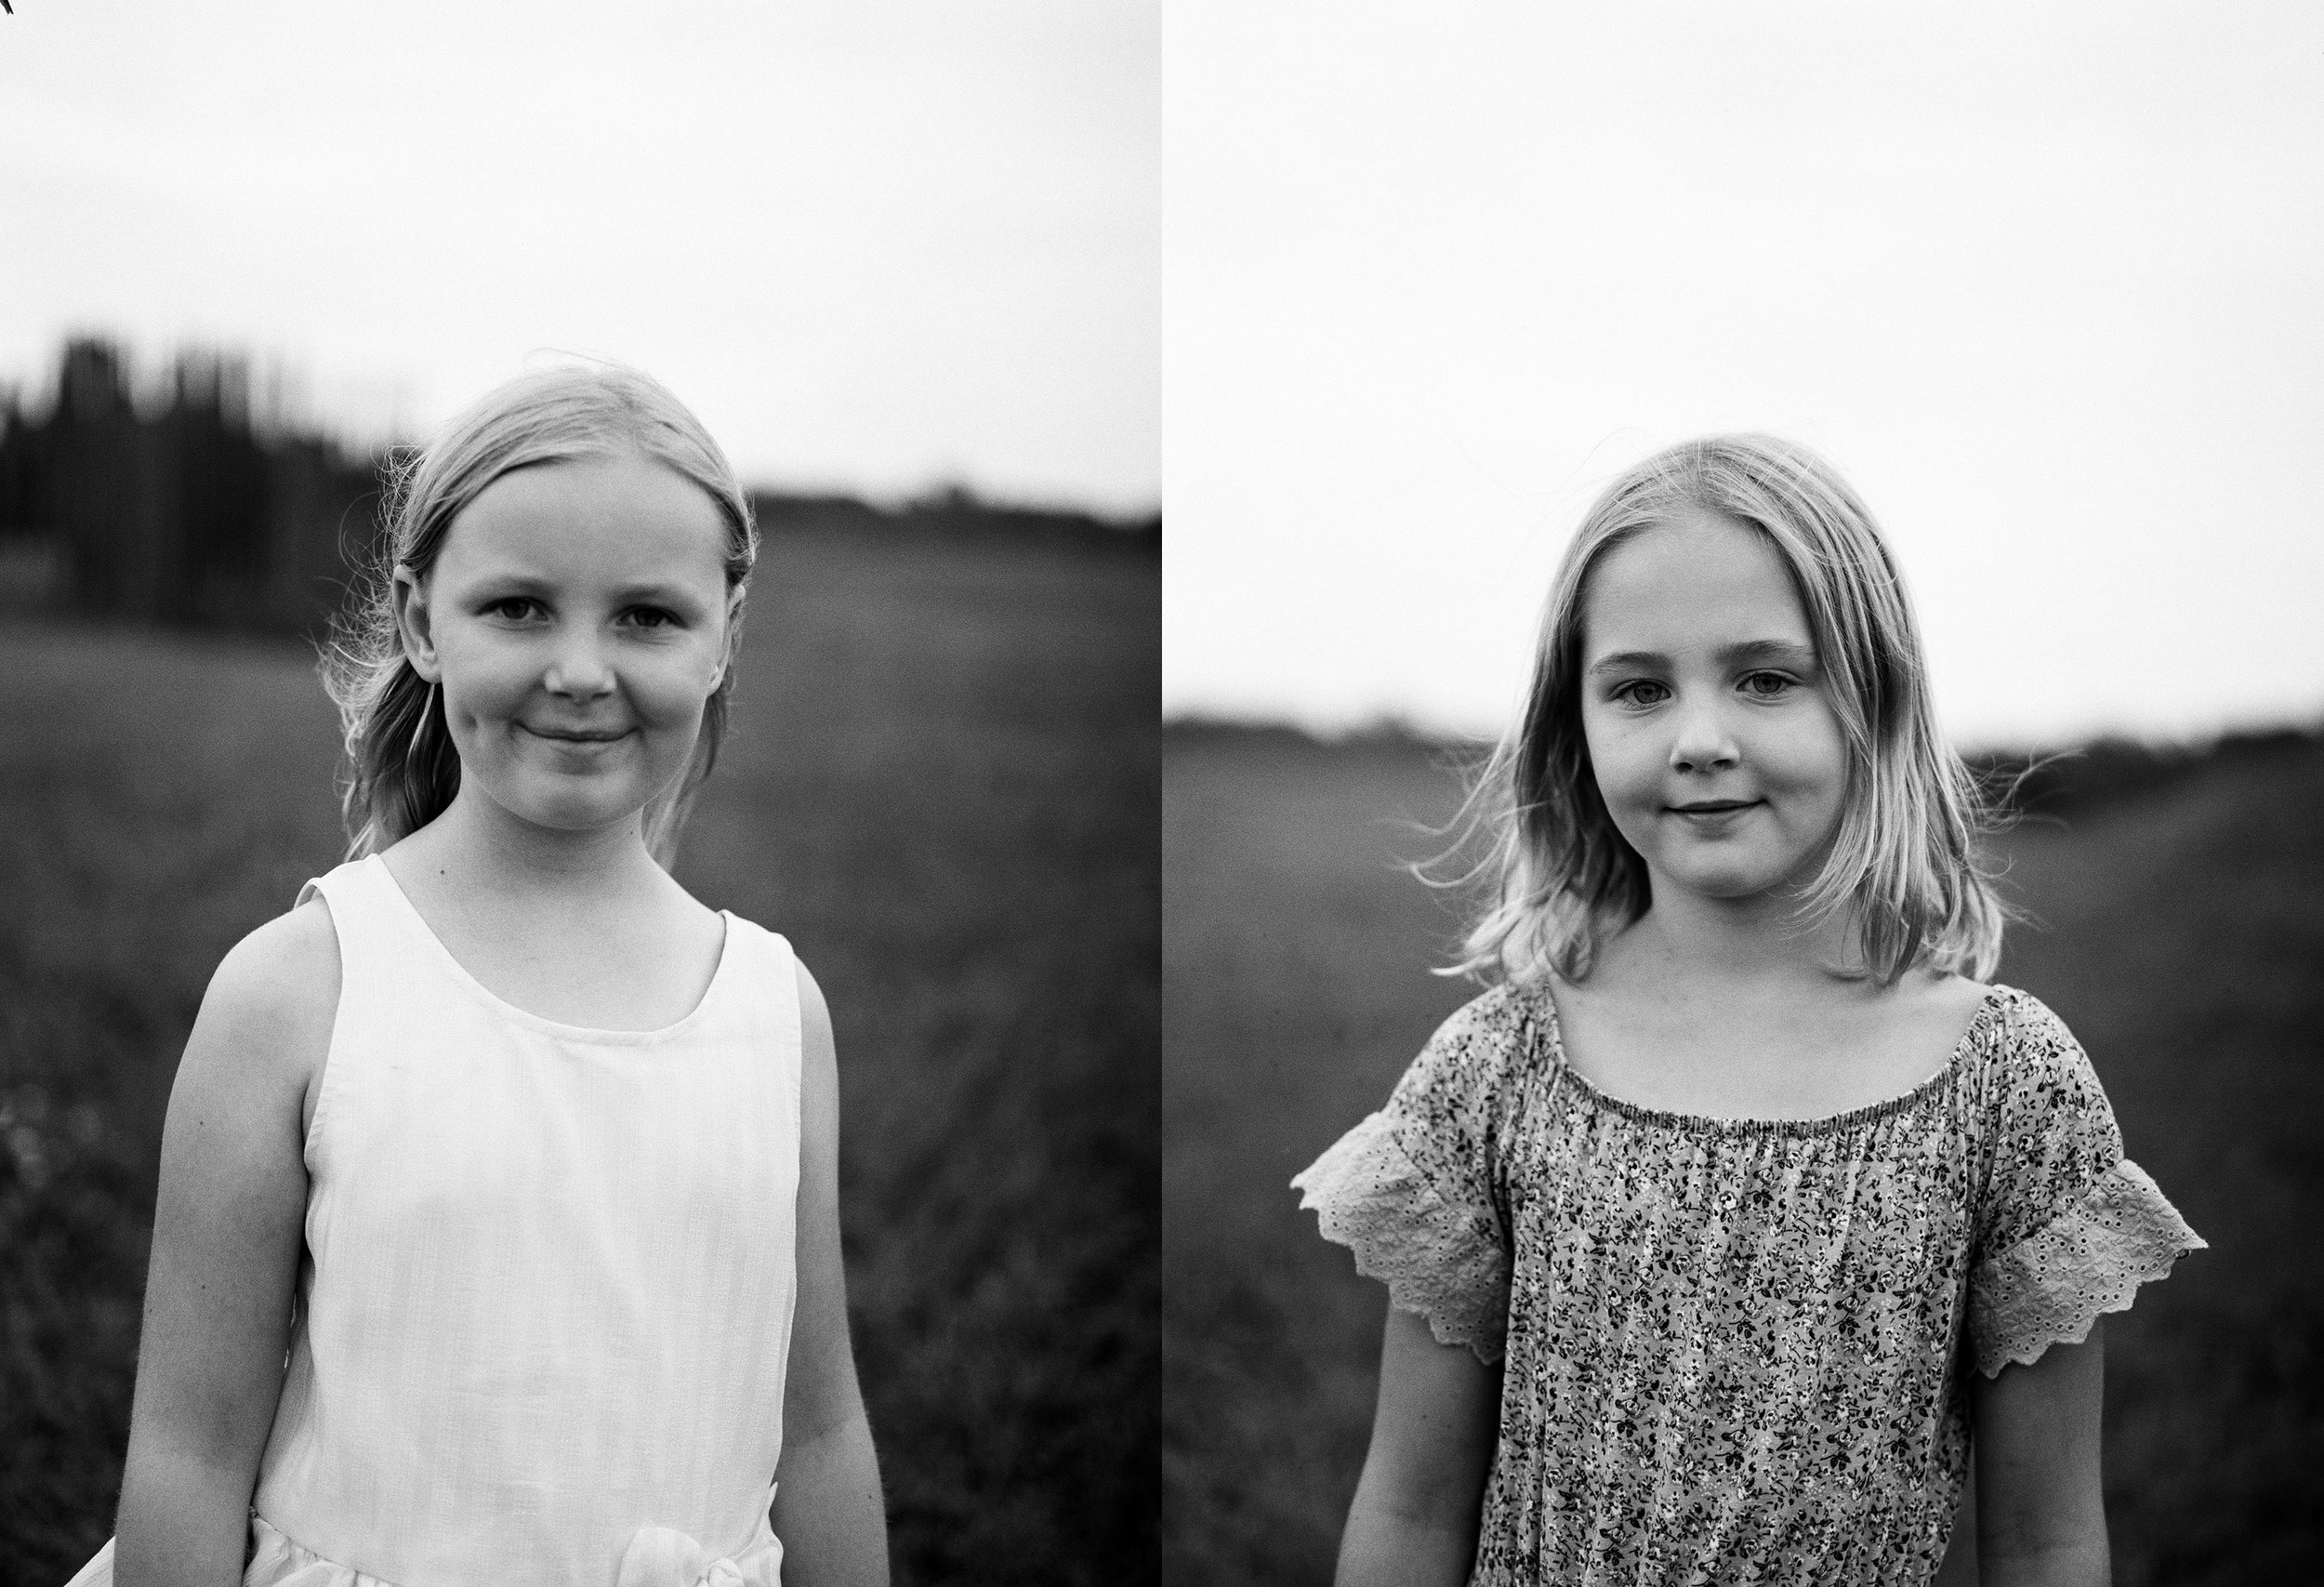 portraits-girls.jpg